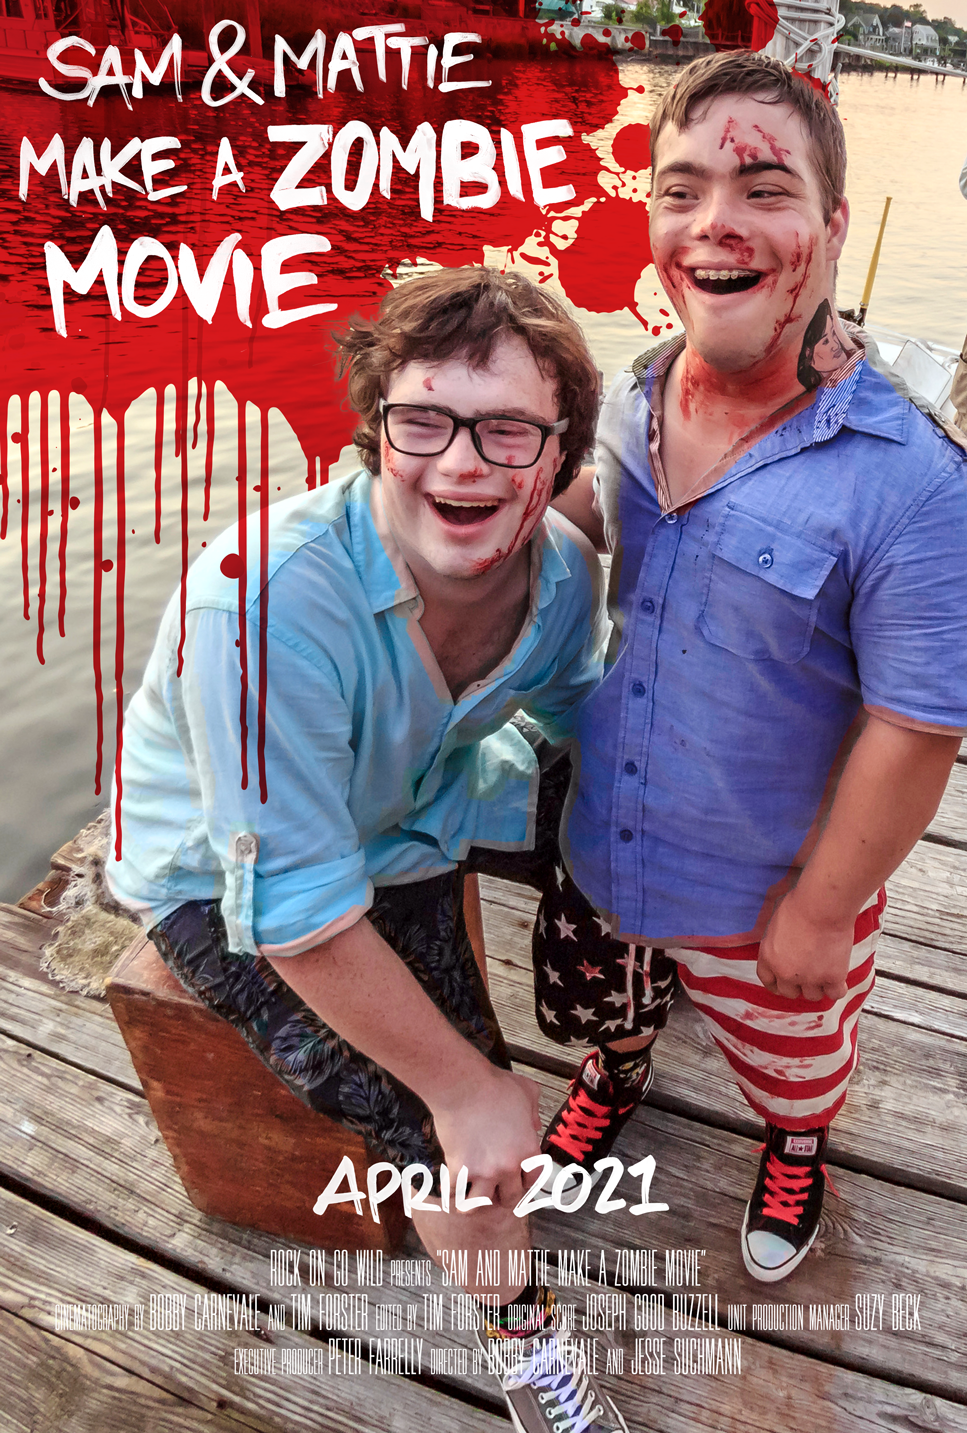 Inspiring Documentary SAM & MATTIE MAKE A ZOMBIE MOVIE Available Now on Cable VOD and Digital HD from Gravitas Ventures